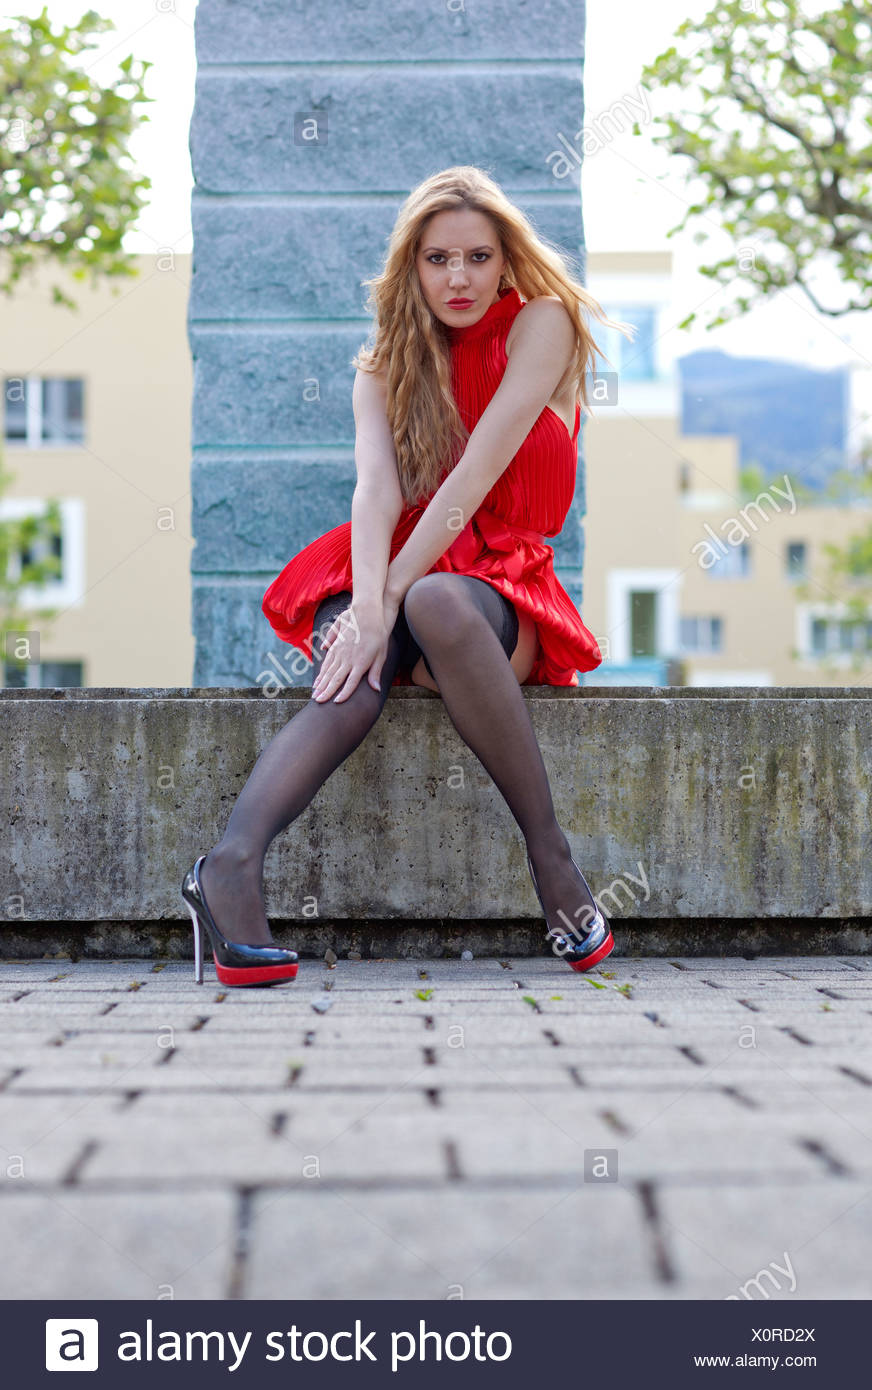 Woman Stockings Old Stock Photos   Woman Stockings Old Stock Images ... 9bb8893ffa6